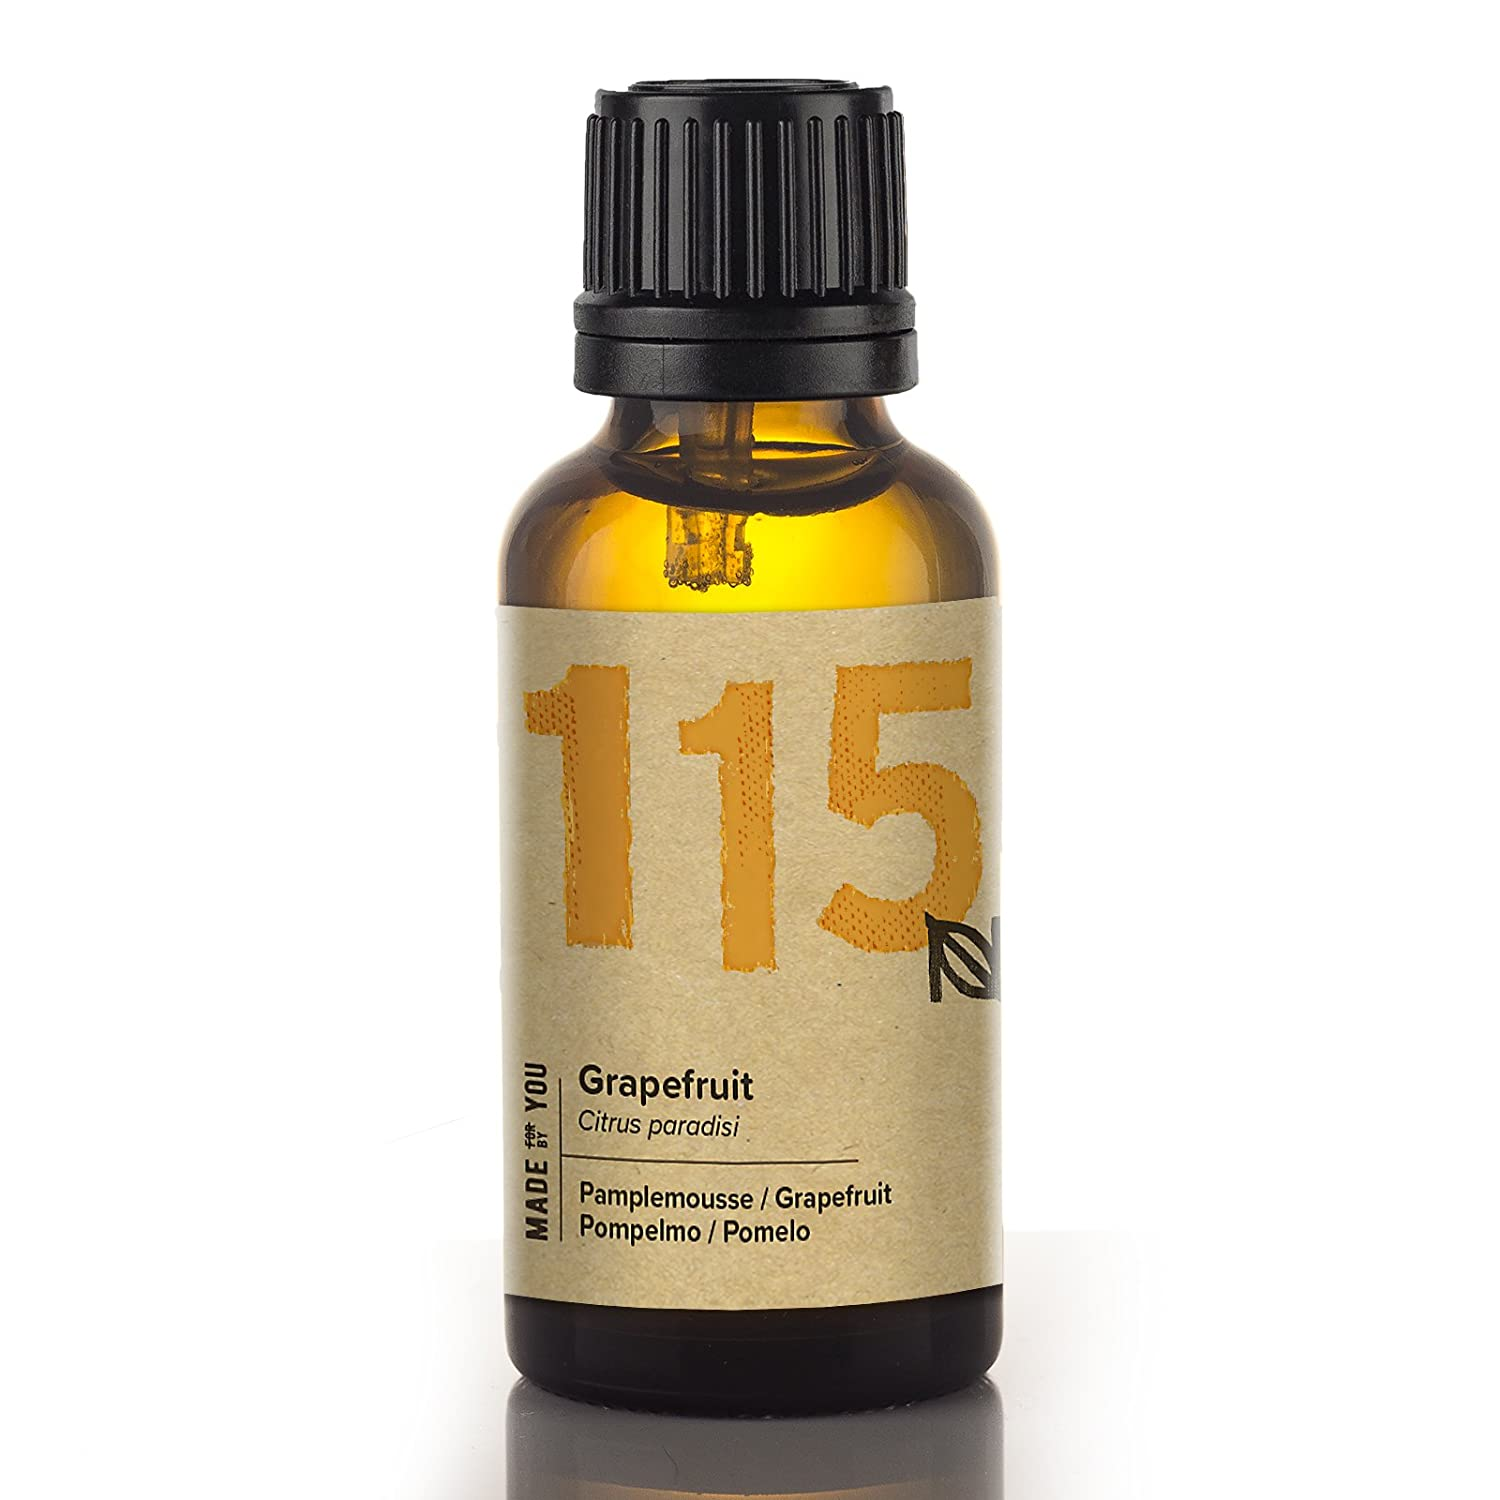 Naissance Grapefruit Essential Oil (no. 115) 30ml - Pure, Natural, Cruelty Free, Vegan, and Undiluted - To use in Aromatherapy & Diffusers